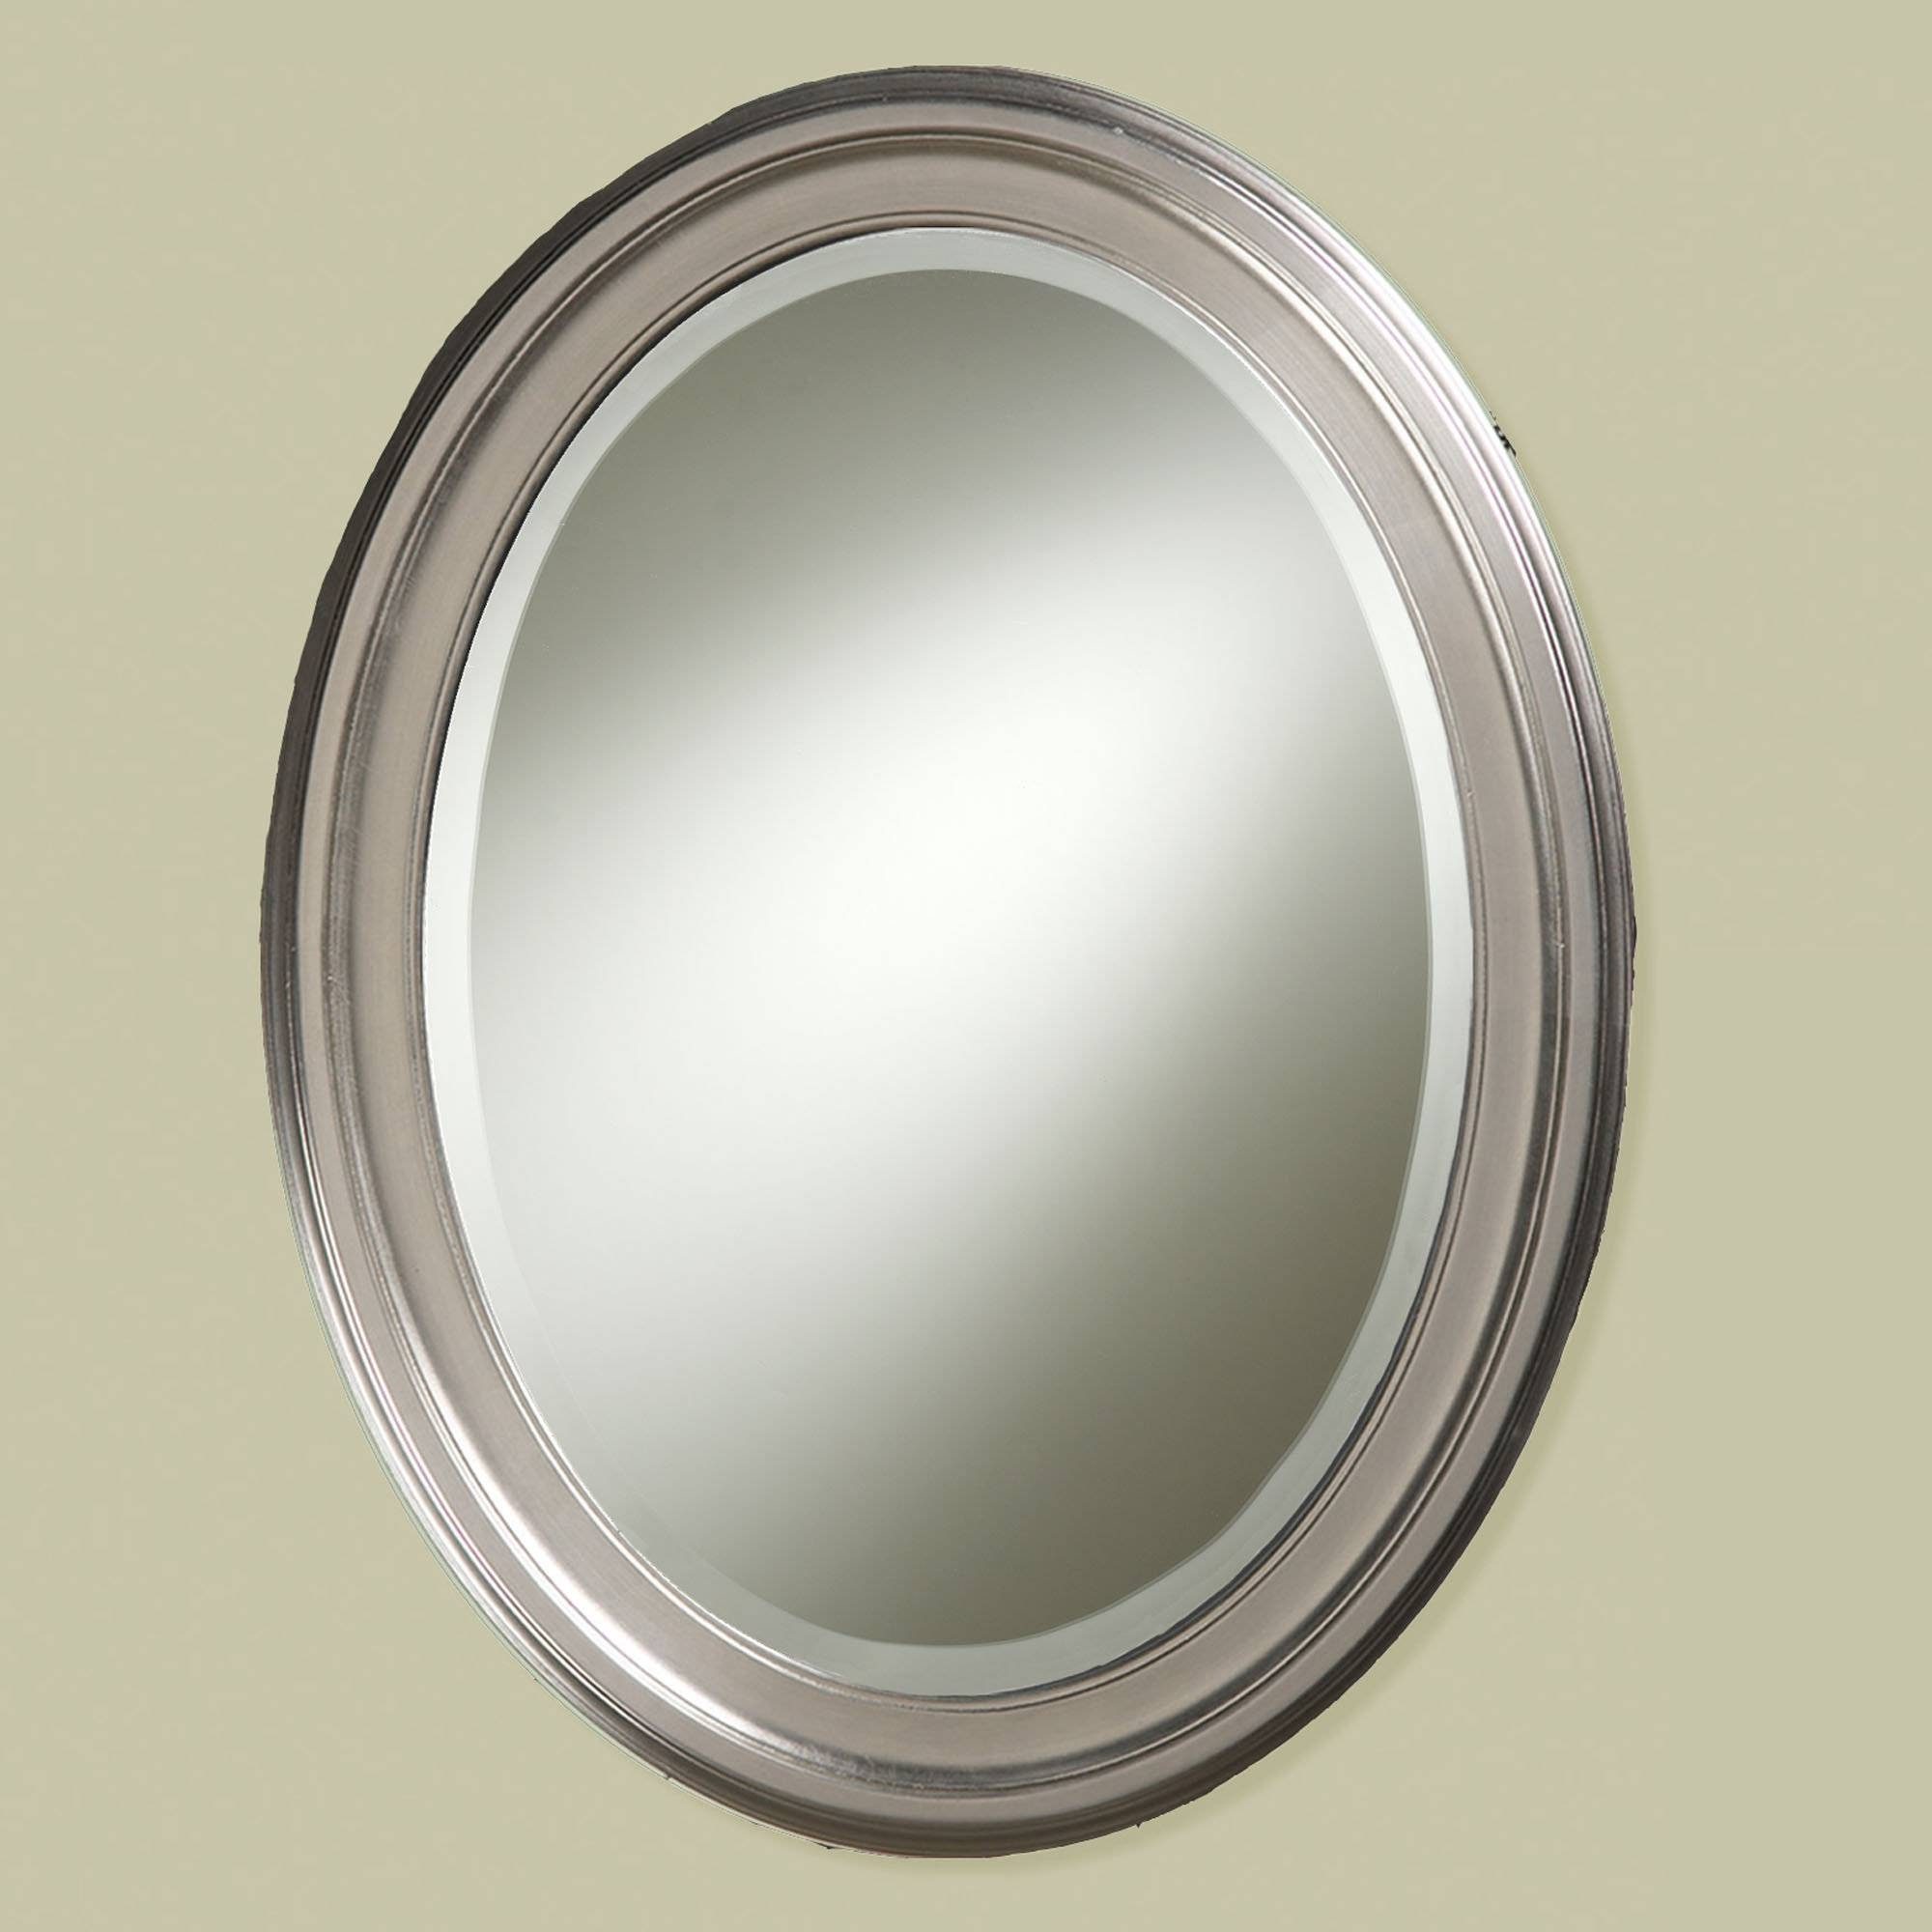 Bathroom : Black Oval Bathroom Mirrors Cool Features 2017 Oval throughout Black Oval Wall Mirrors (Image 3 of 25)